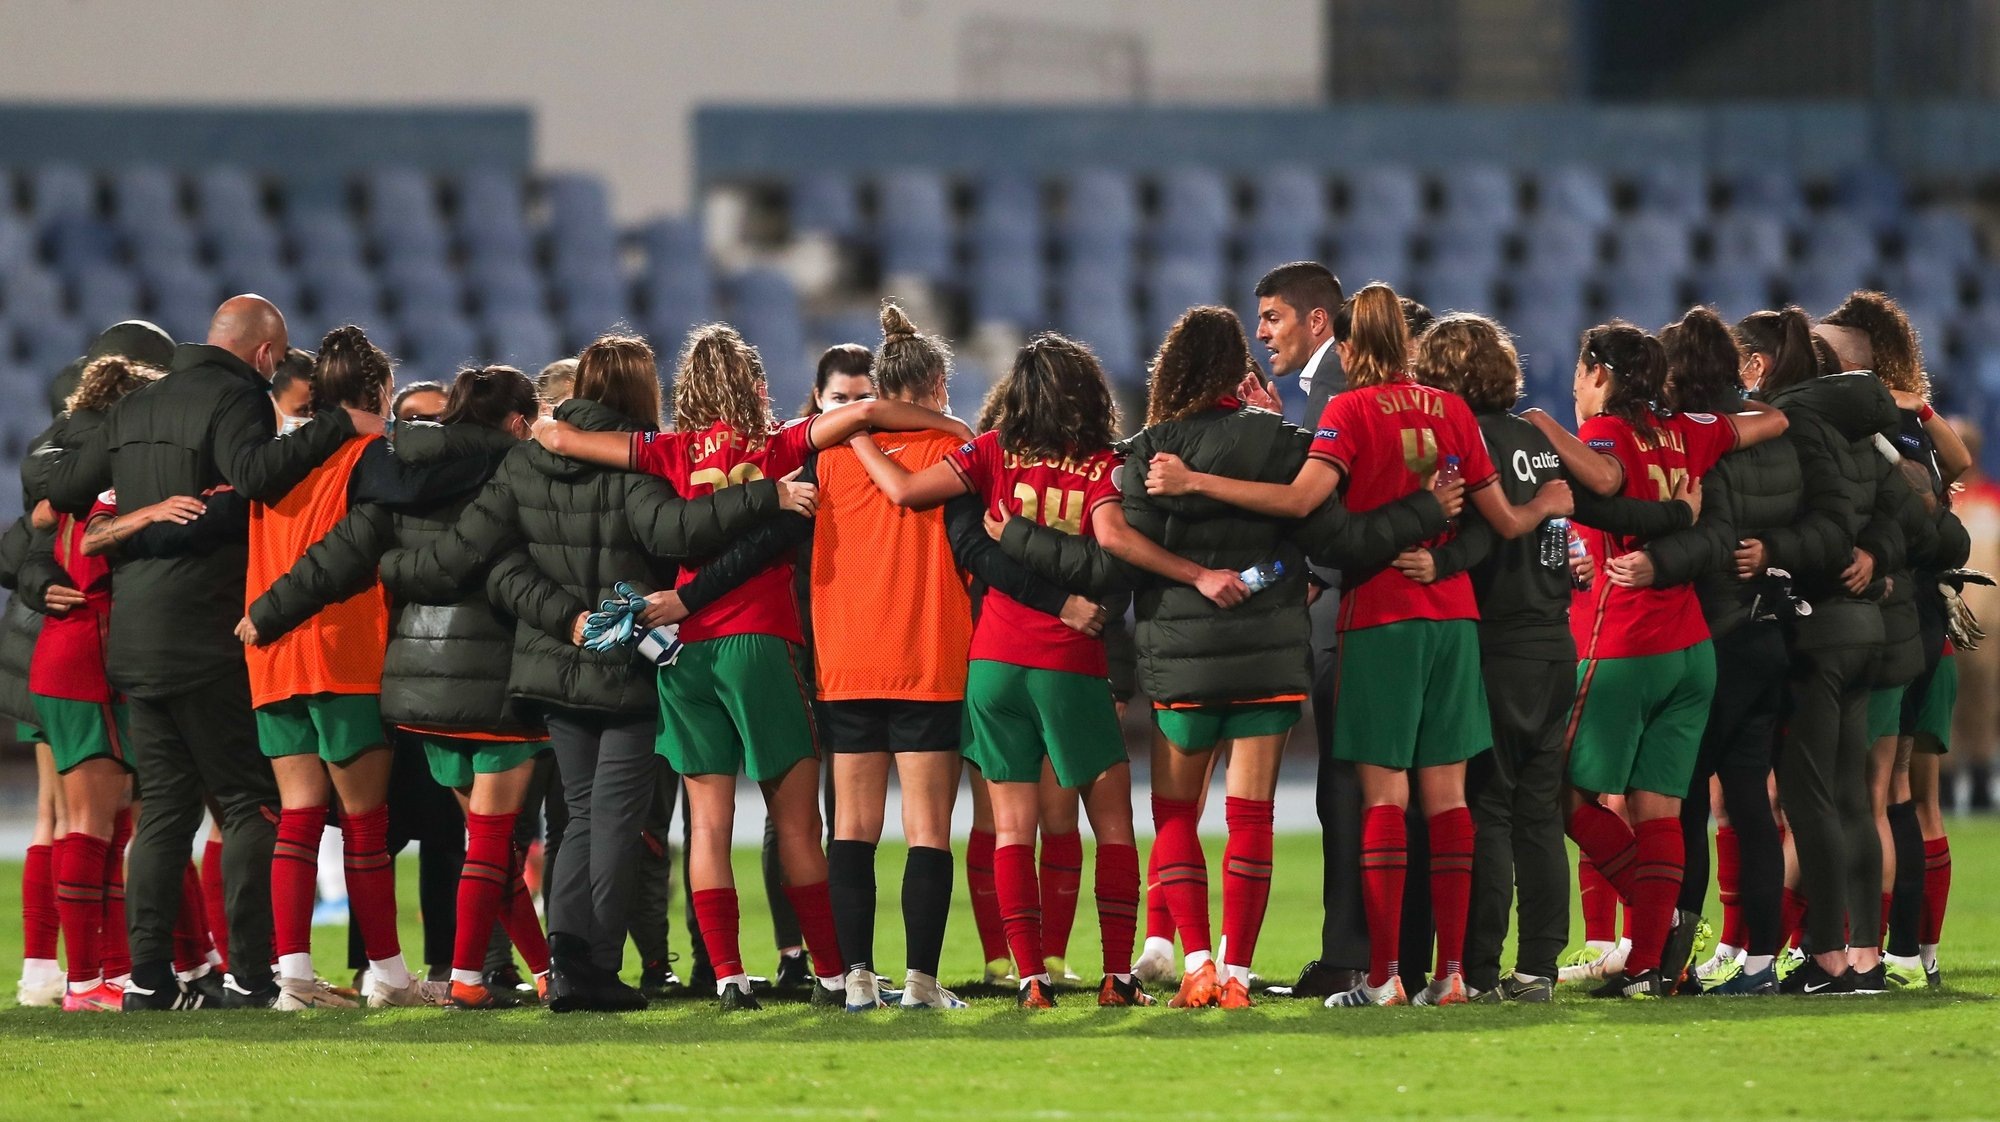 epa09125385 Portugal's head coach Francisco Neto talks the his players after the UEFA Women's EURO play-off match at Restelo Stadium in Lisbon, Portugal, 09 April 2021.  EPA/MIGUEL A. LOPES